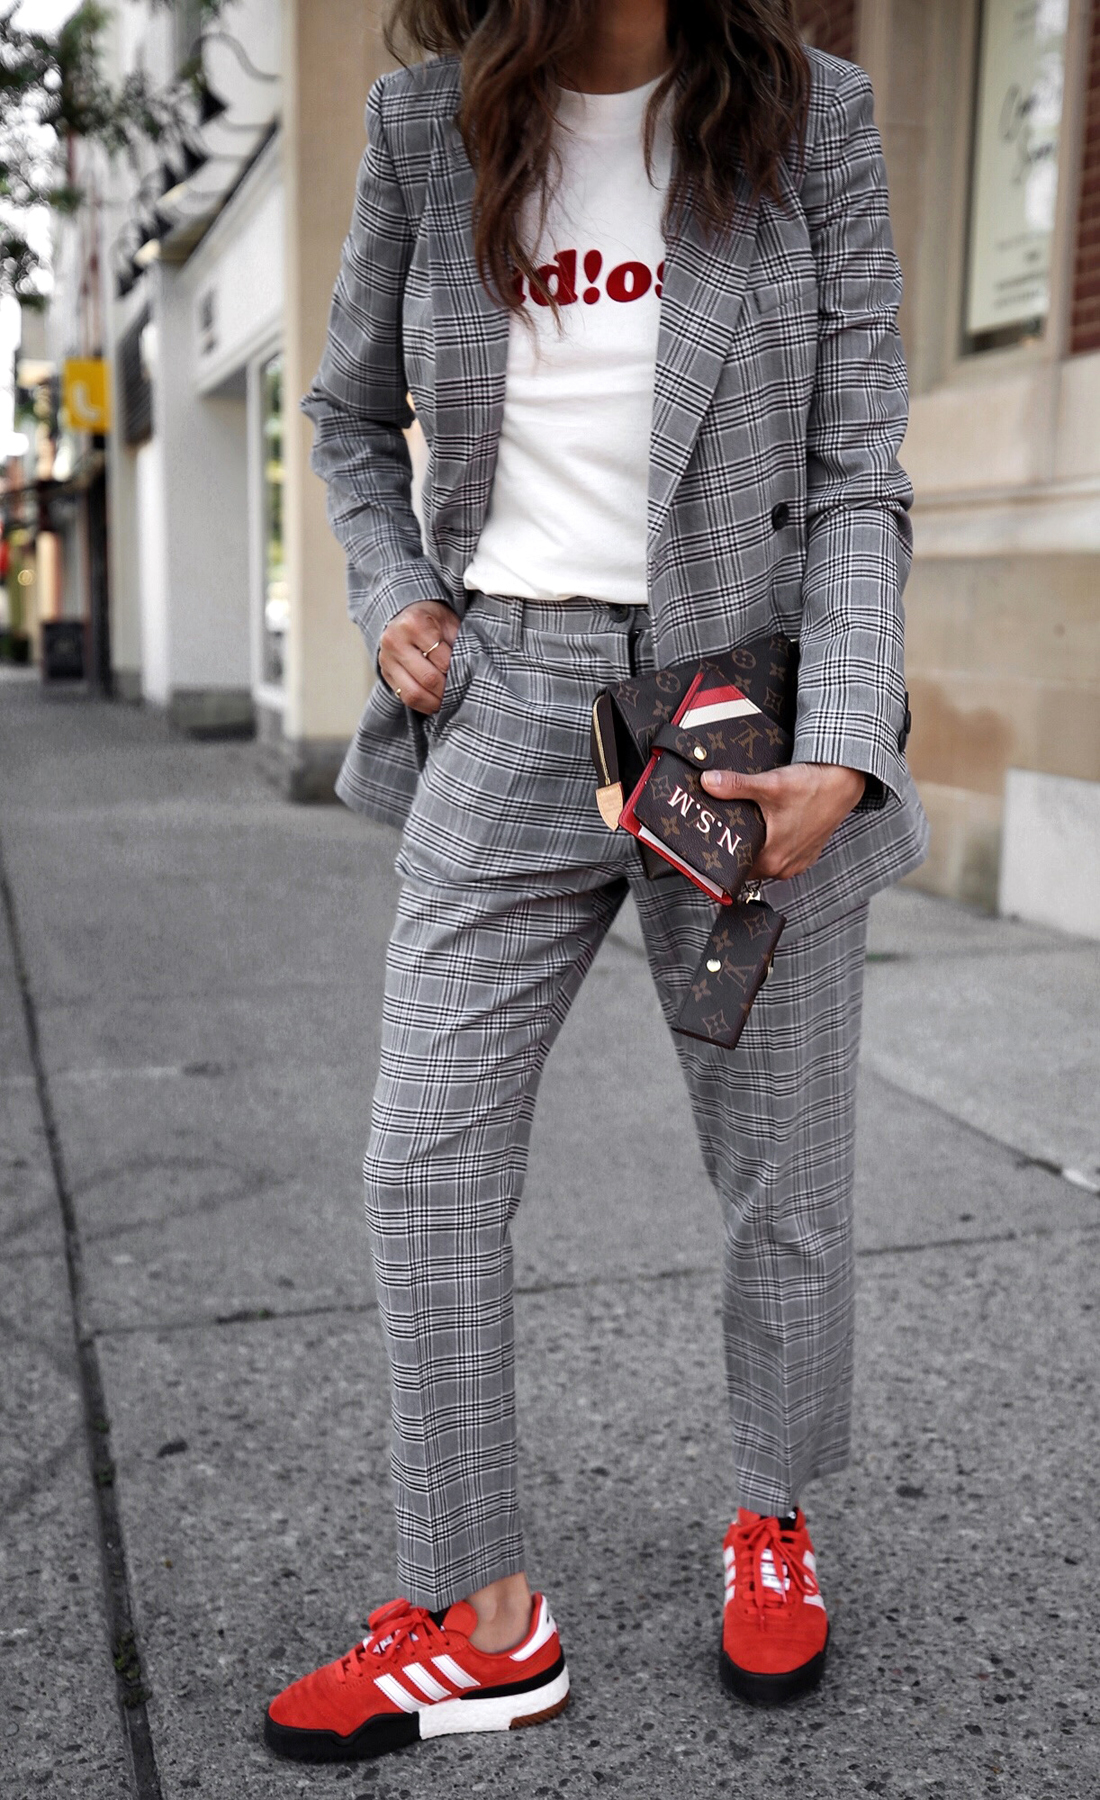 fw18 street style plaid suit women - menswear inspired - nordstrom - alexander wang Orange red AW BBall Soccer Sneakers, louis vuitton small agenda 3.JPG